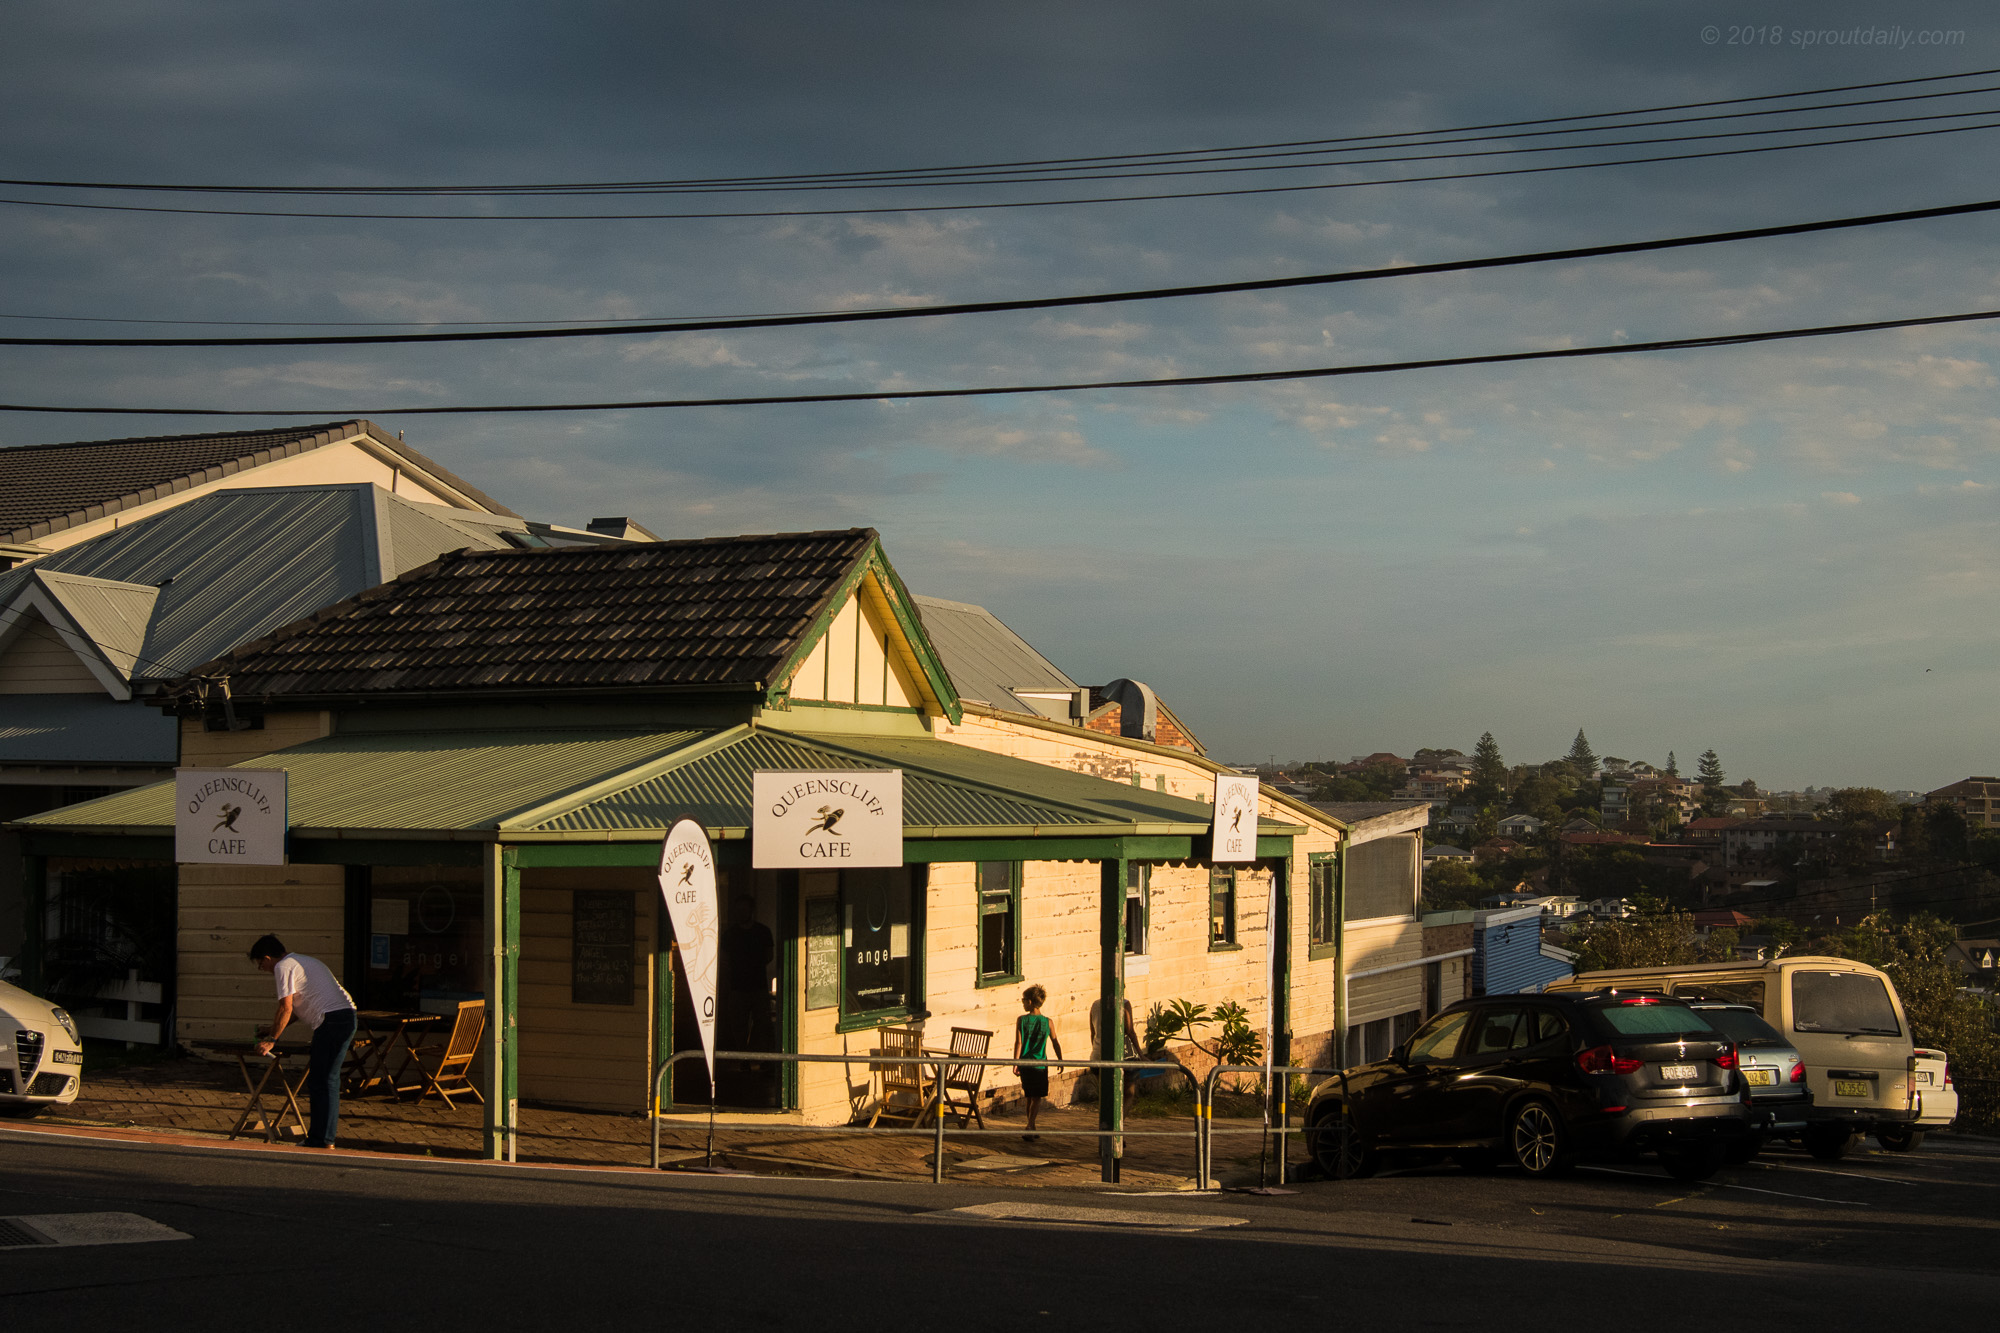 Queenscliff Cafe - When did you pop up?